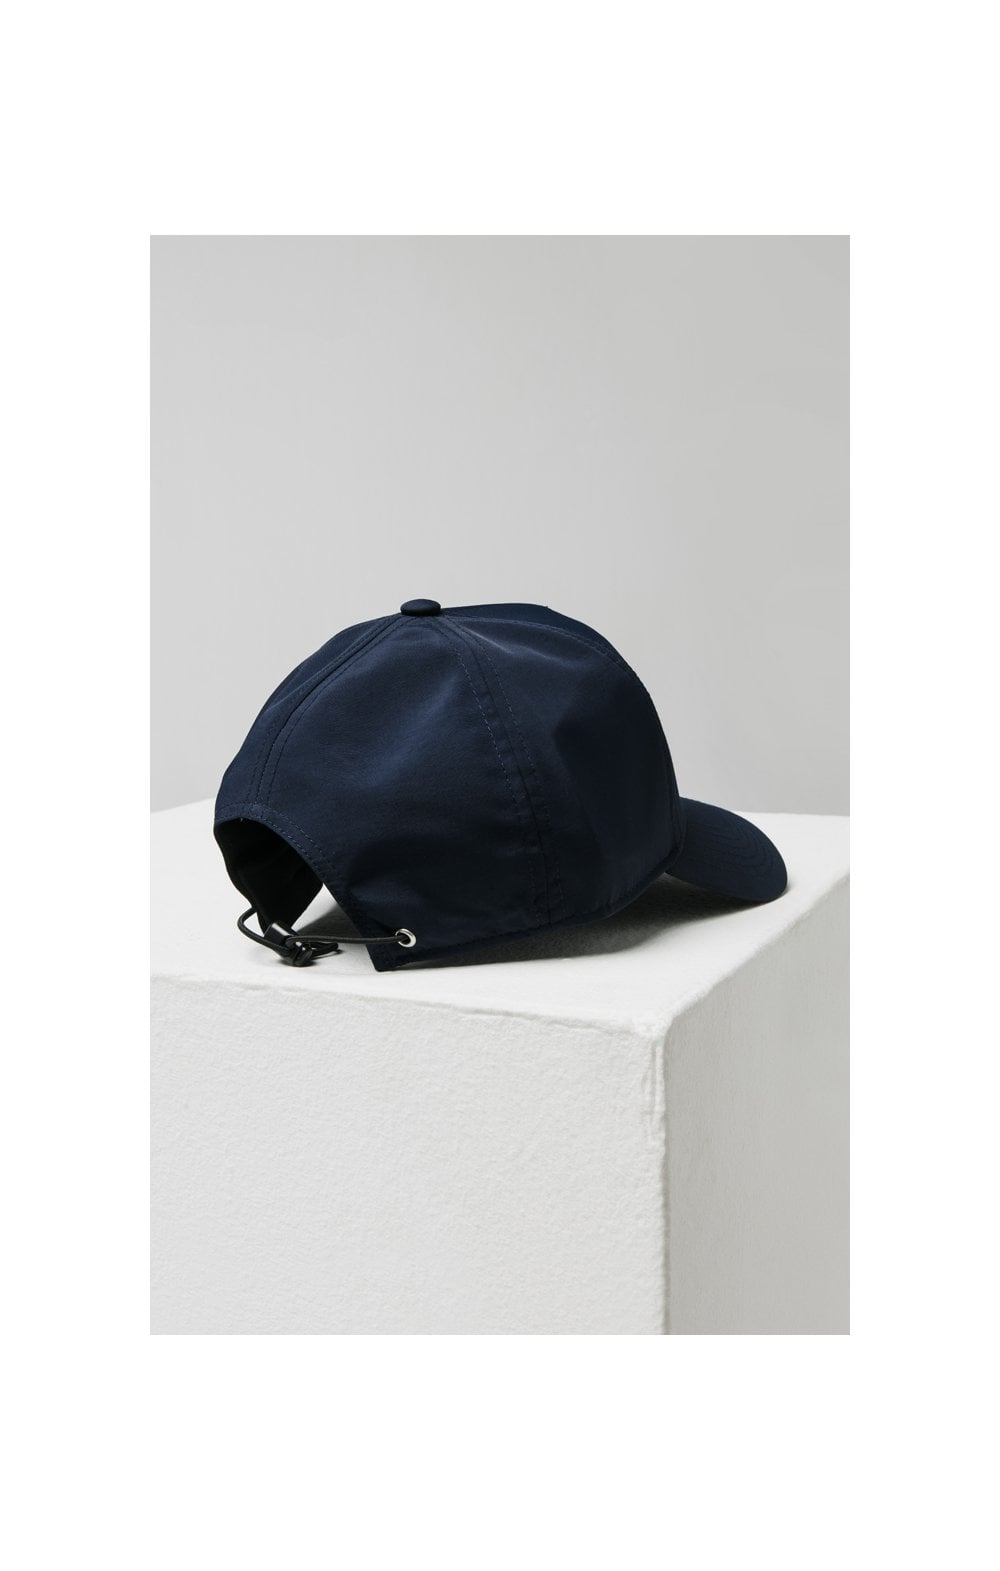 Load image into Gallery viewer, SikSilk Crushed Nylon Full Trucker - Navy (3)